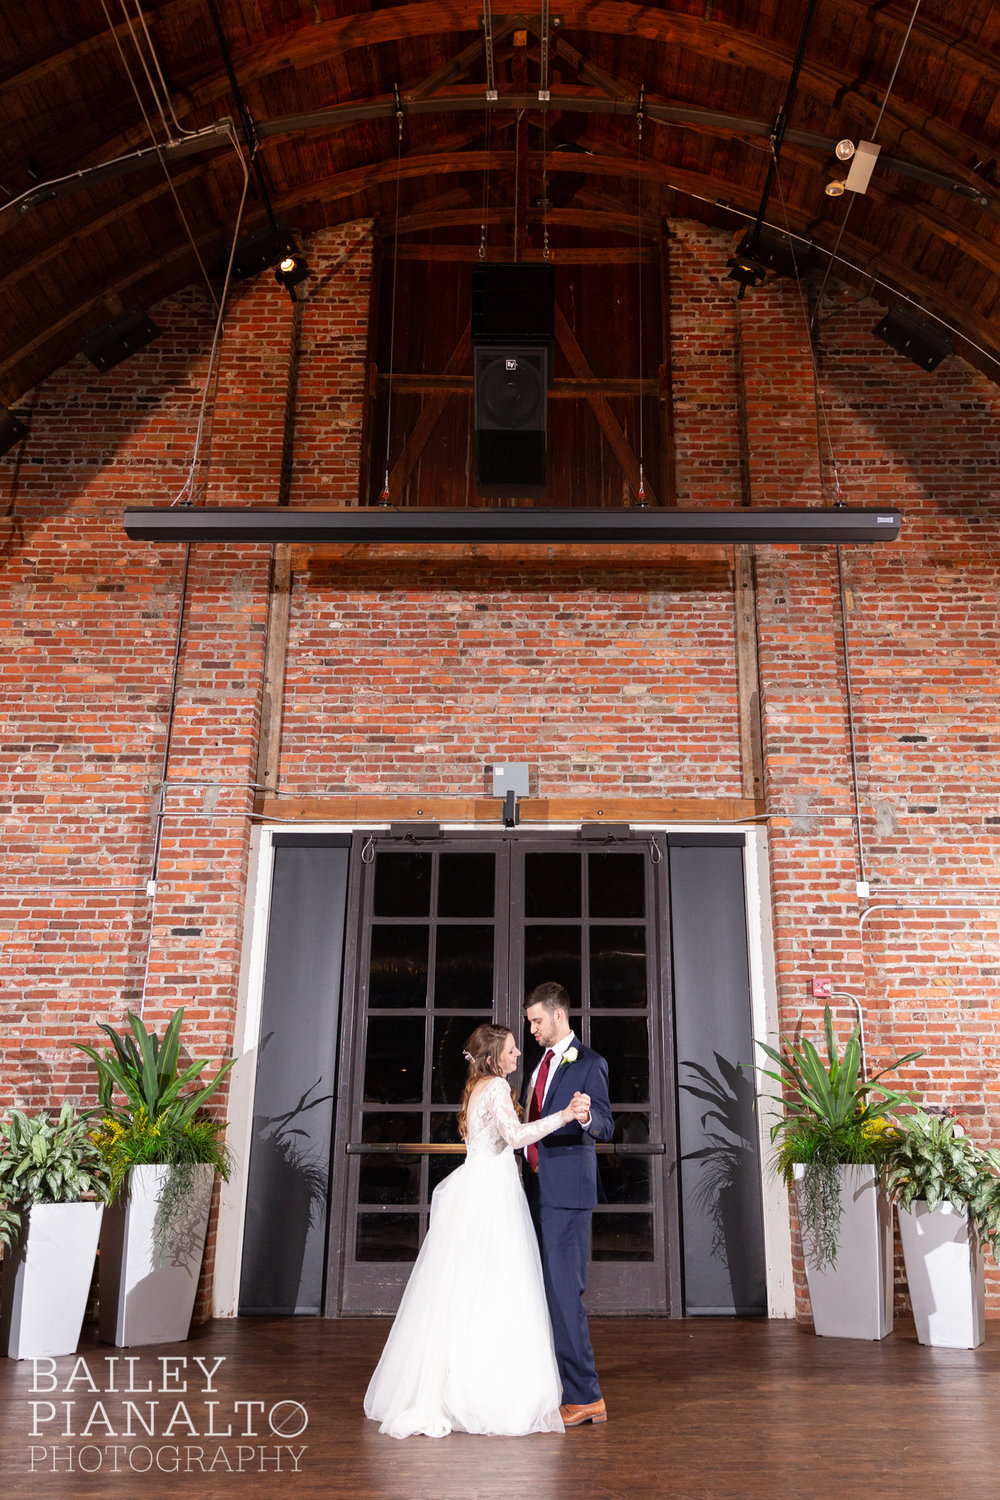 Burgundy & Navy Thompson Barn Wedding | Lenexa, Kansas